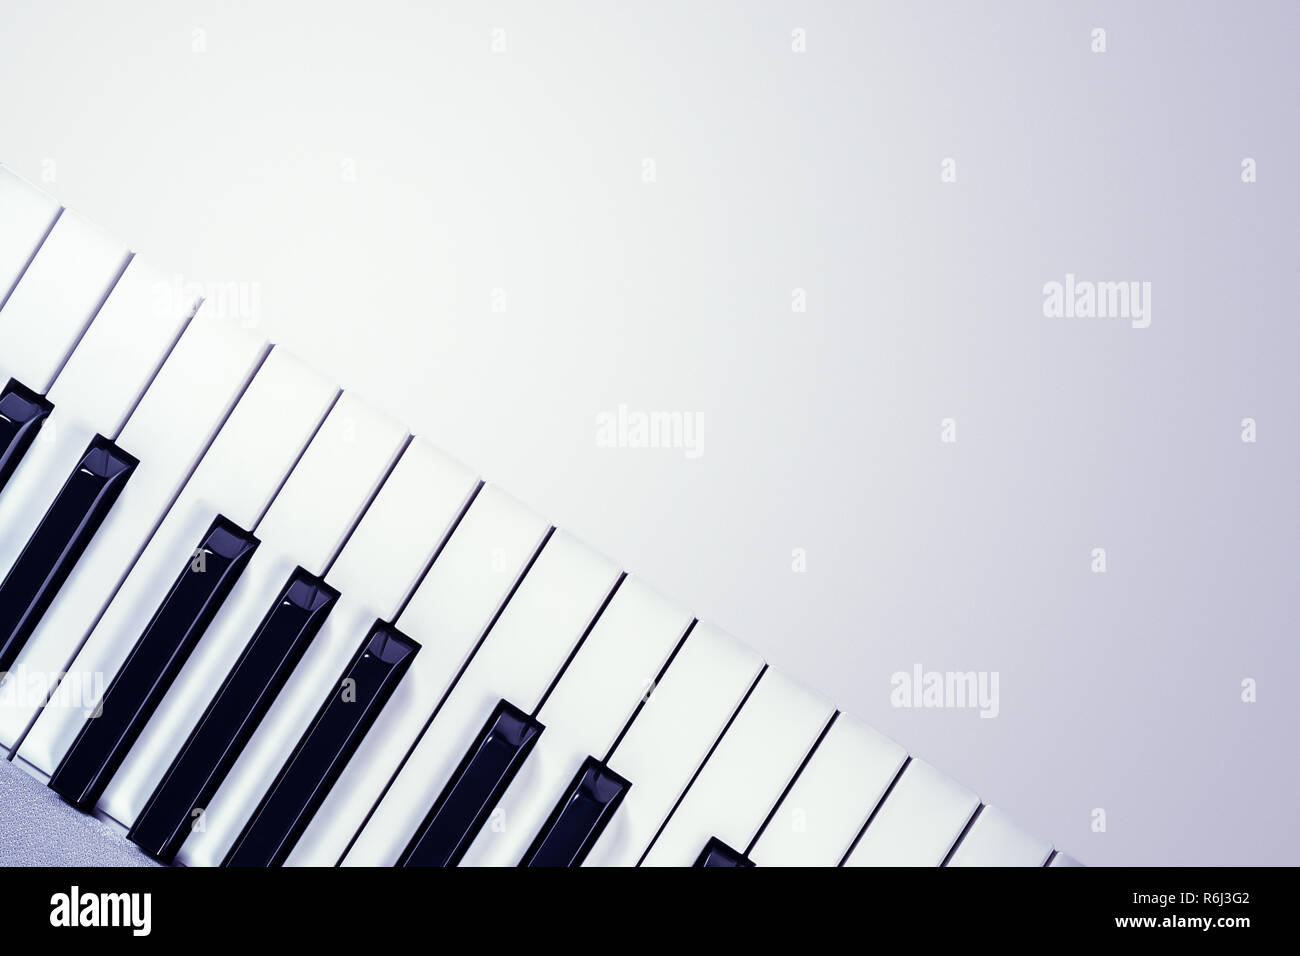 View from above of a synthesizer keyboard  isolated on a gradient gray background - Stock Image